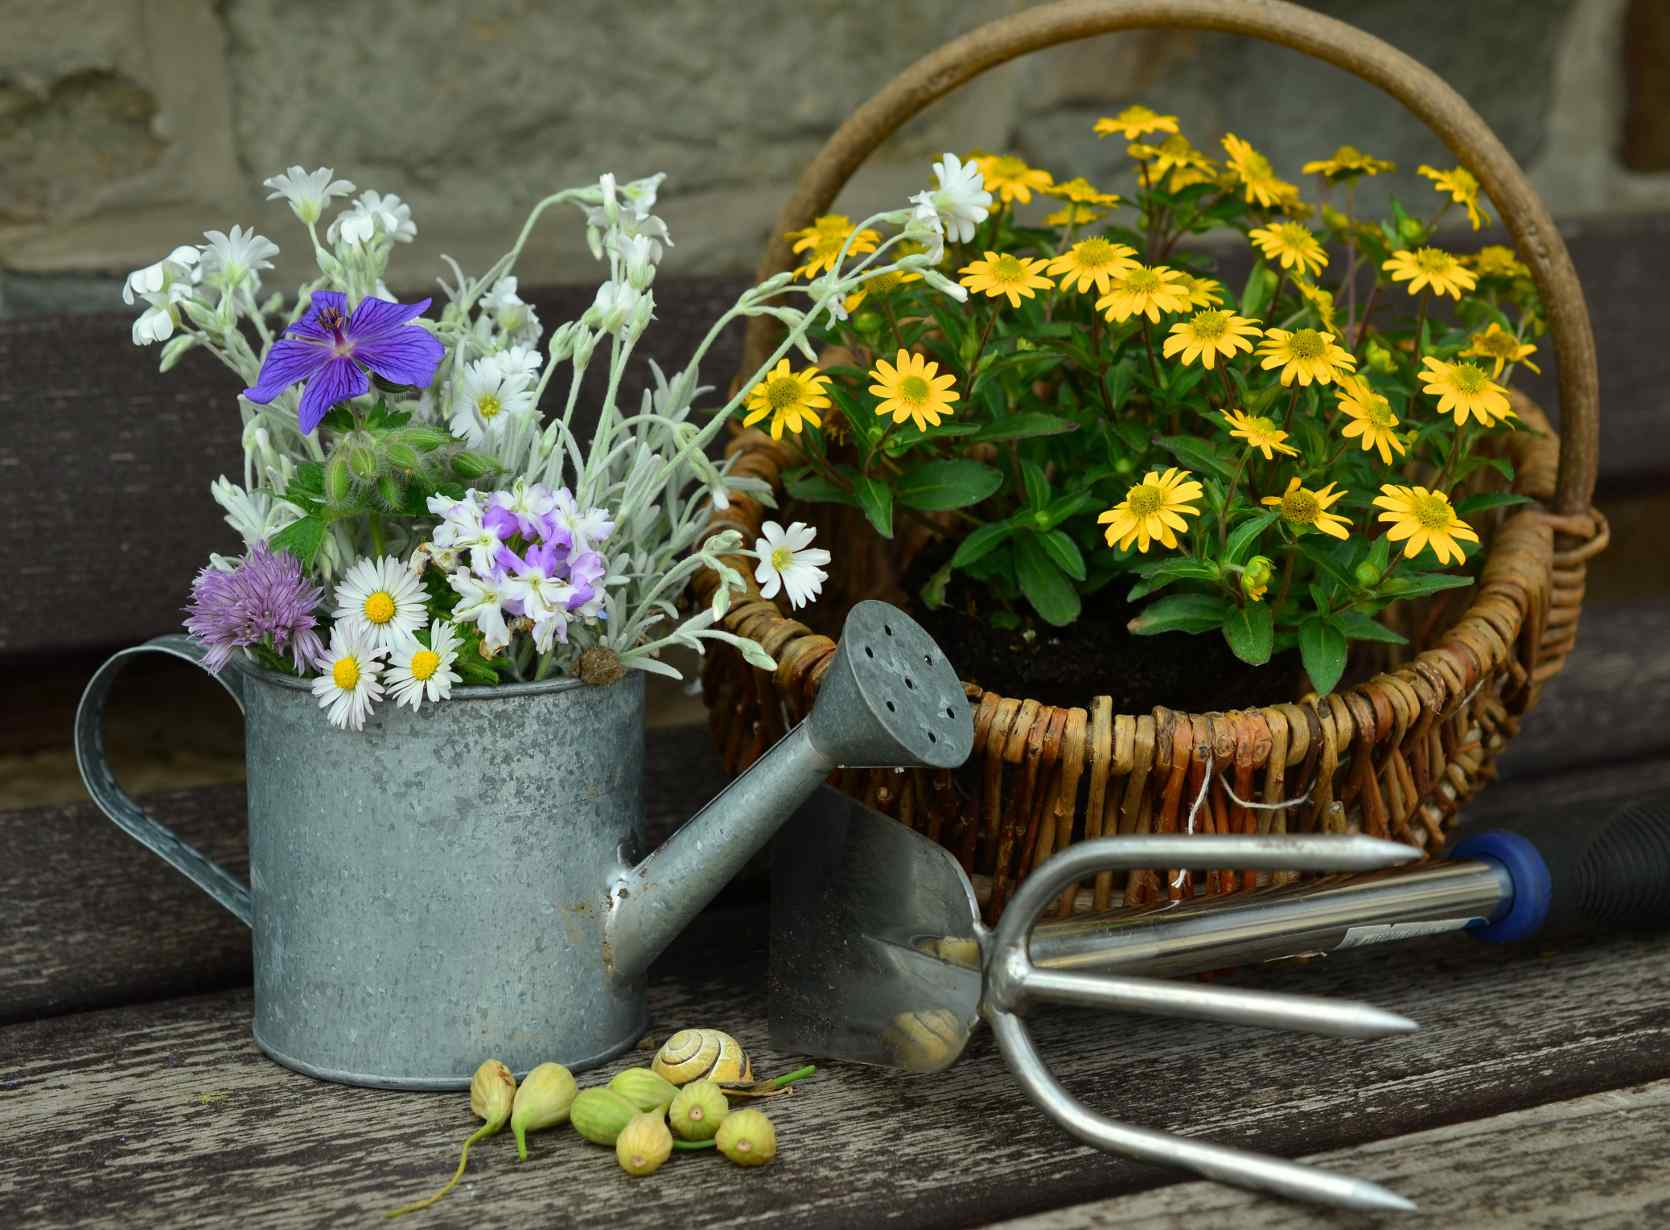 Water saving systems for container gardening on a balcony or terrace how to conserve water in - Ways saving water watering garden ...